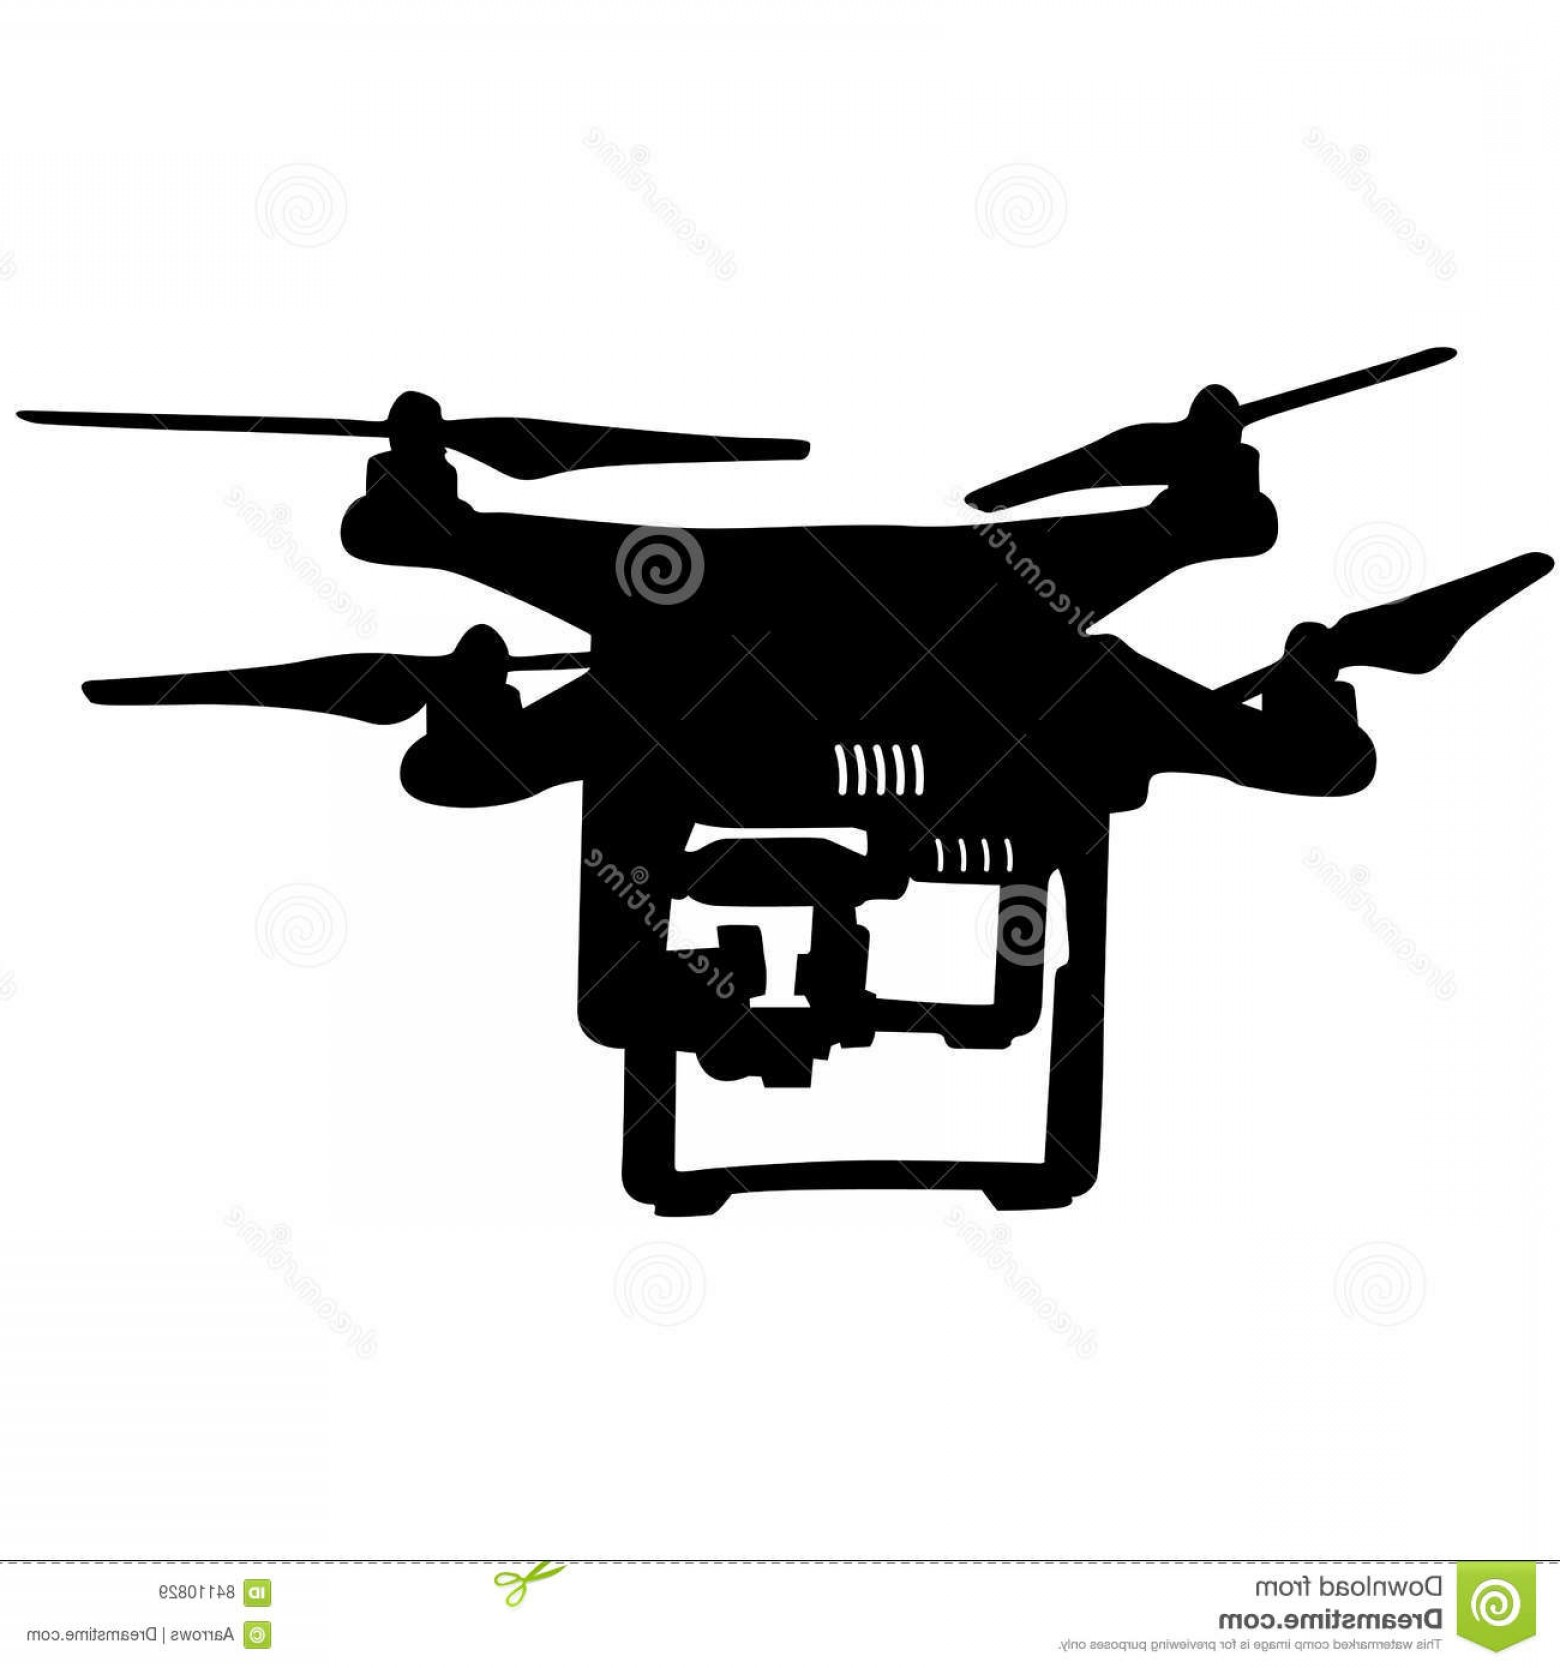 Vector Eclipse Fly Machine: Stock Illustration Black Silhouette Drone Quadrocopter Vector Illustration Image